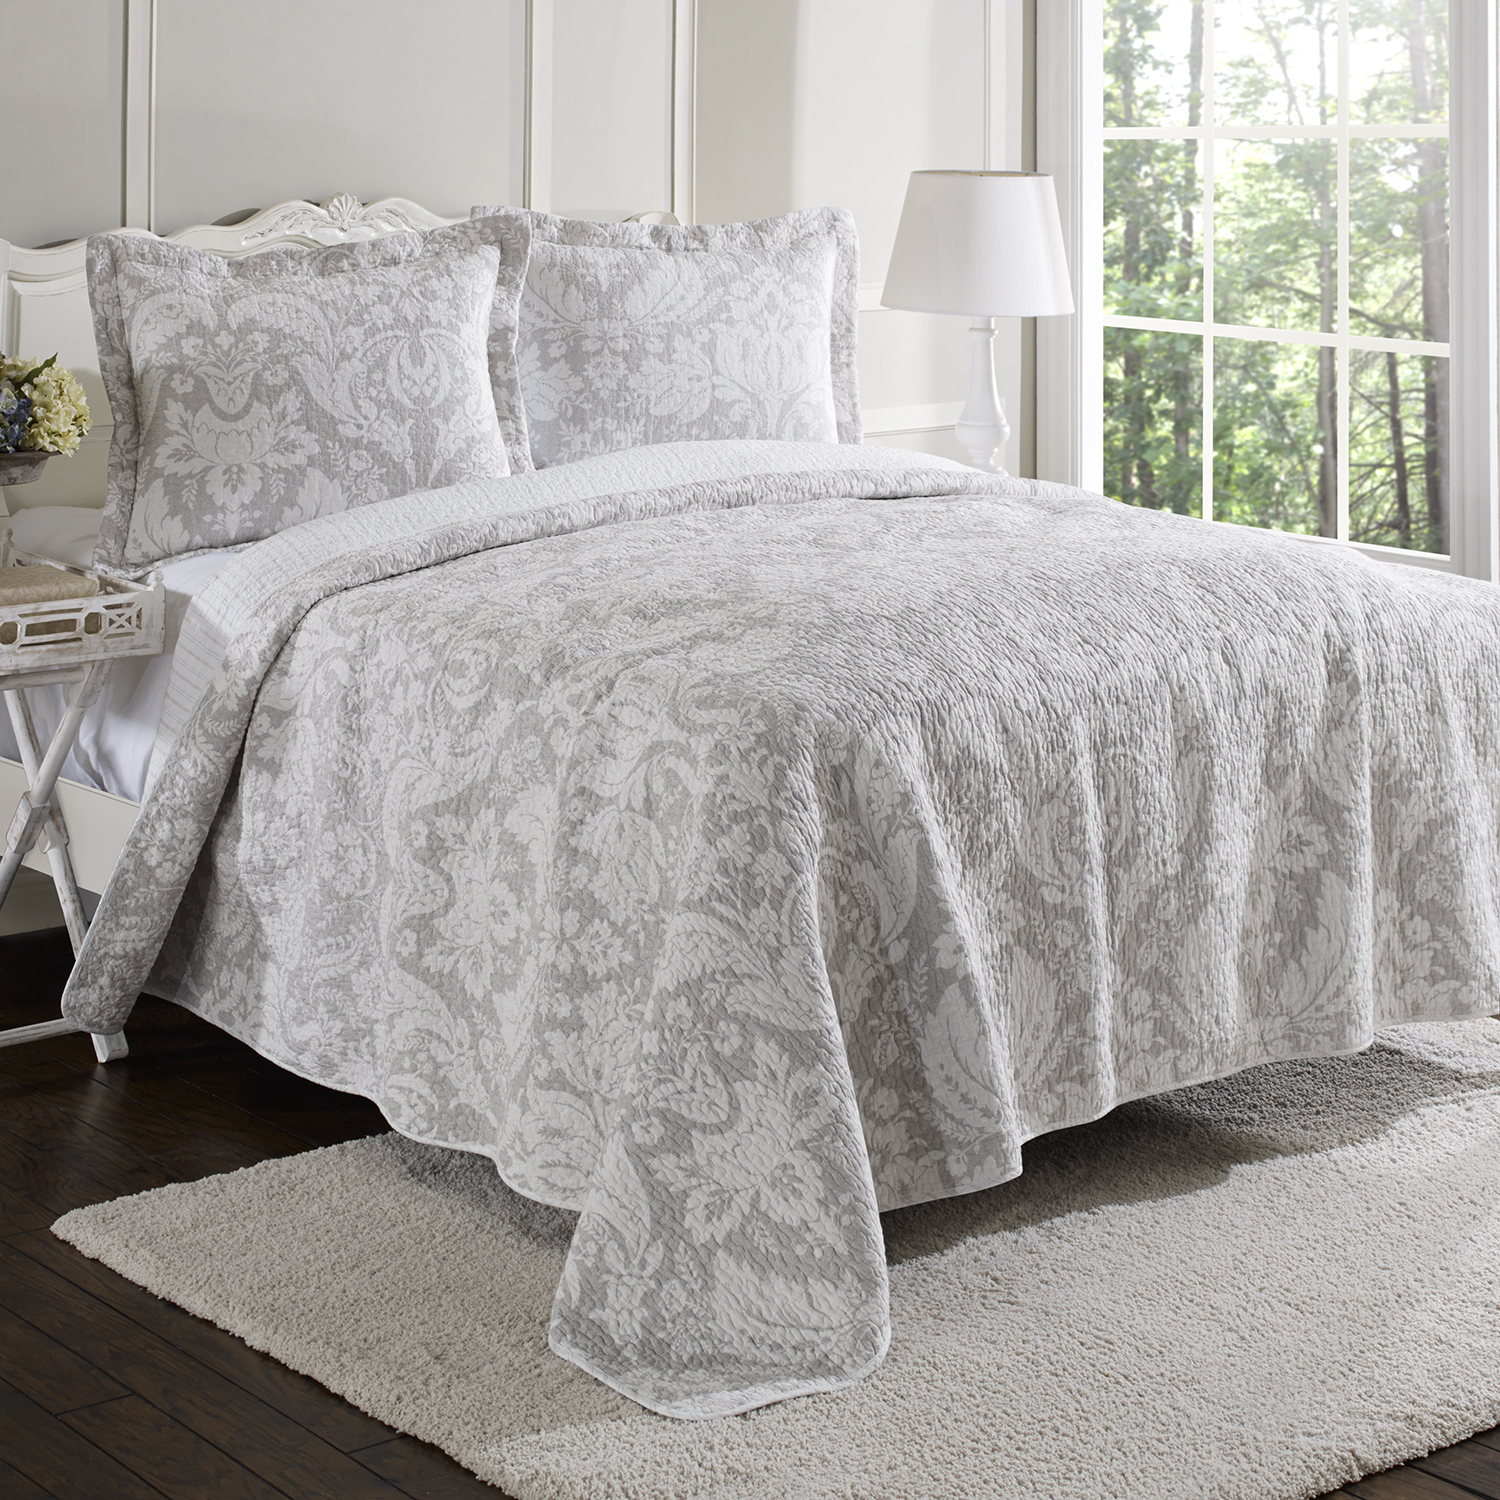 charming laura ashley bedding in grey and white floral pattern with white headboard on wooden floor plus white rug matched with white wall plus white table standing lamp for bedroom decor ideas